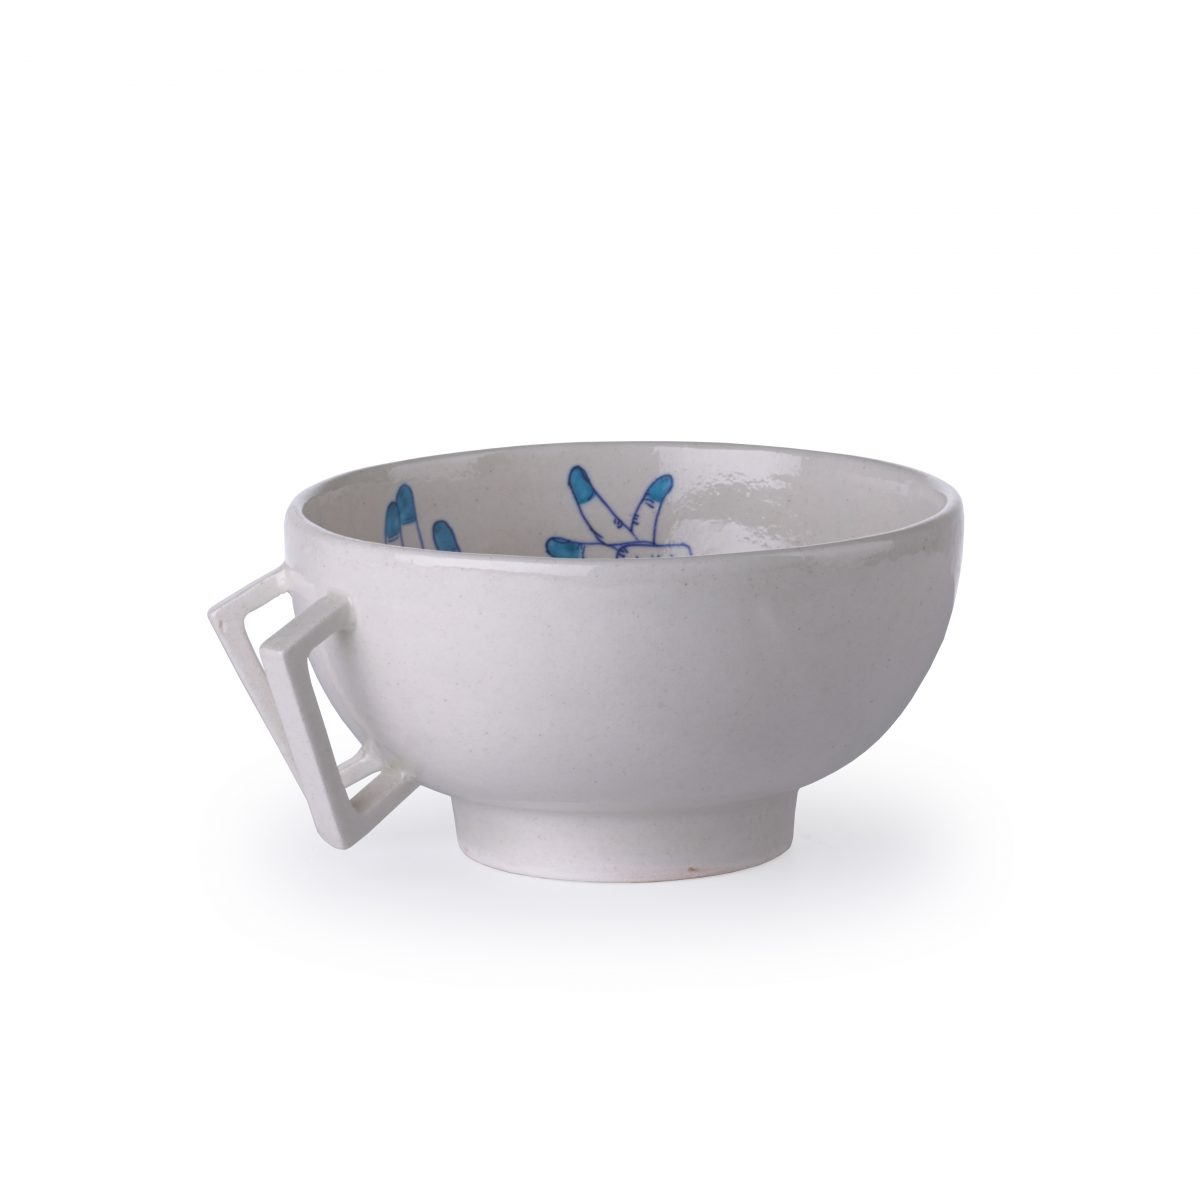 Blue Pottery Bowl M blue Imperfect Design – Gimmii